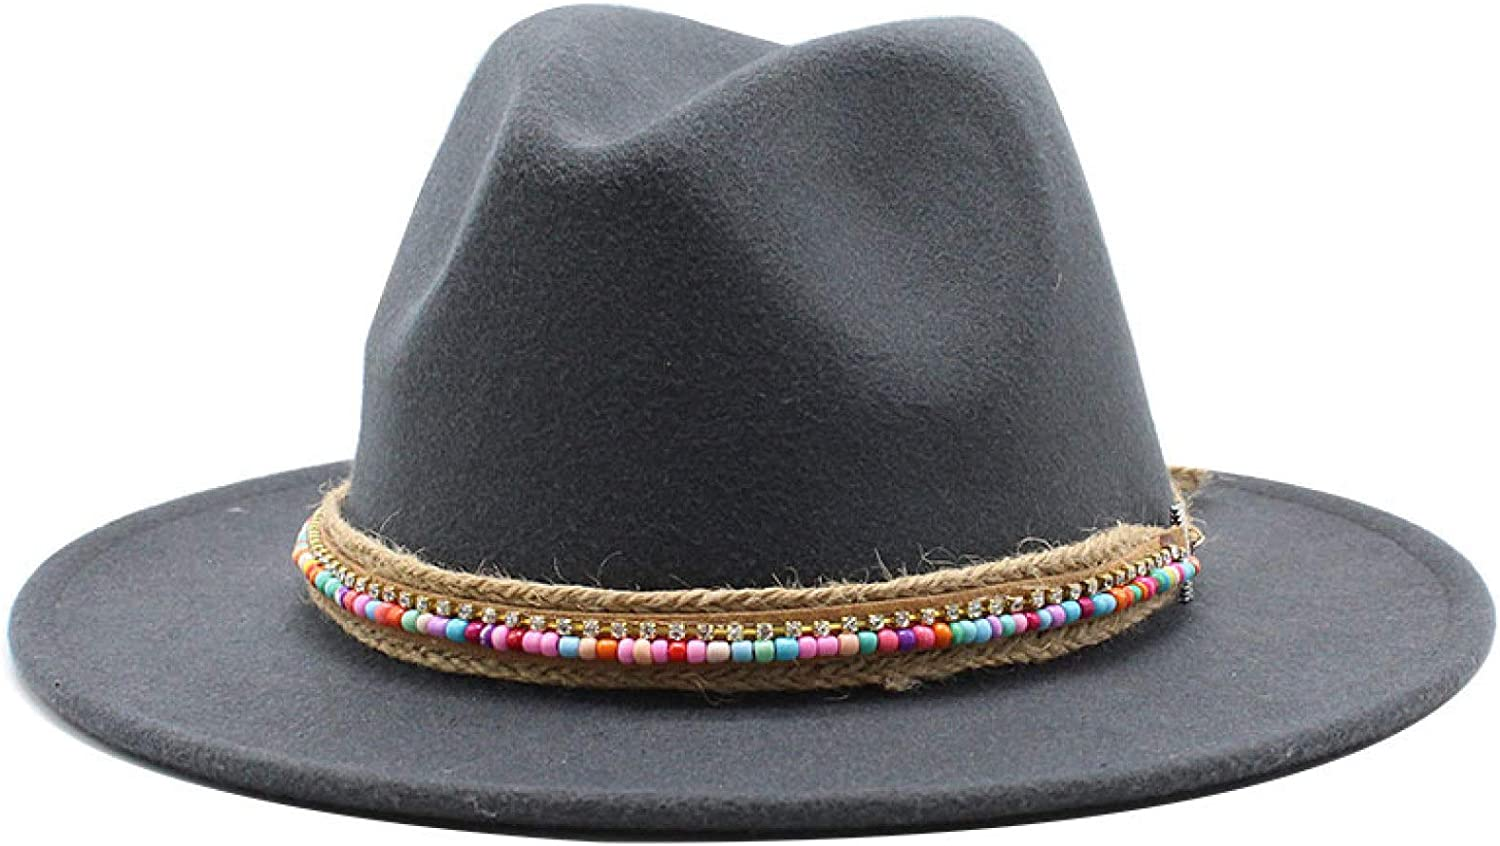 ASO-SLING Candy Color Panama Hats for Lady Wool Wide Brim Fedora Hat 1920s Trendy Jazz Hat for Church Party